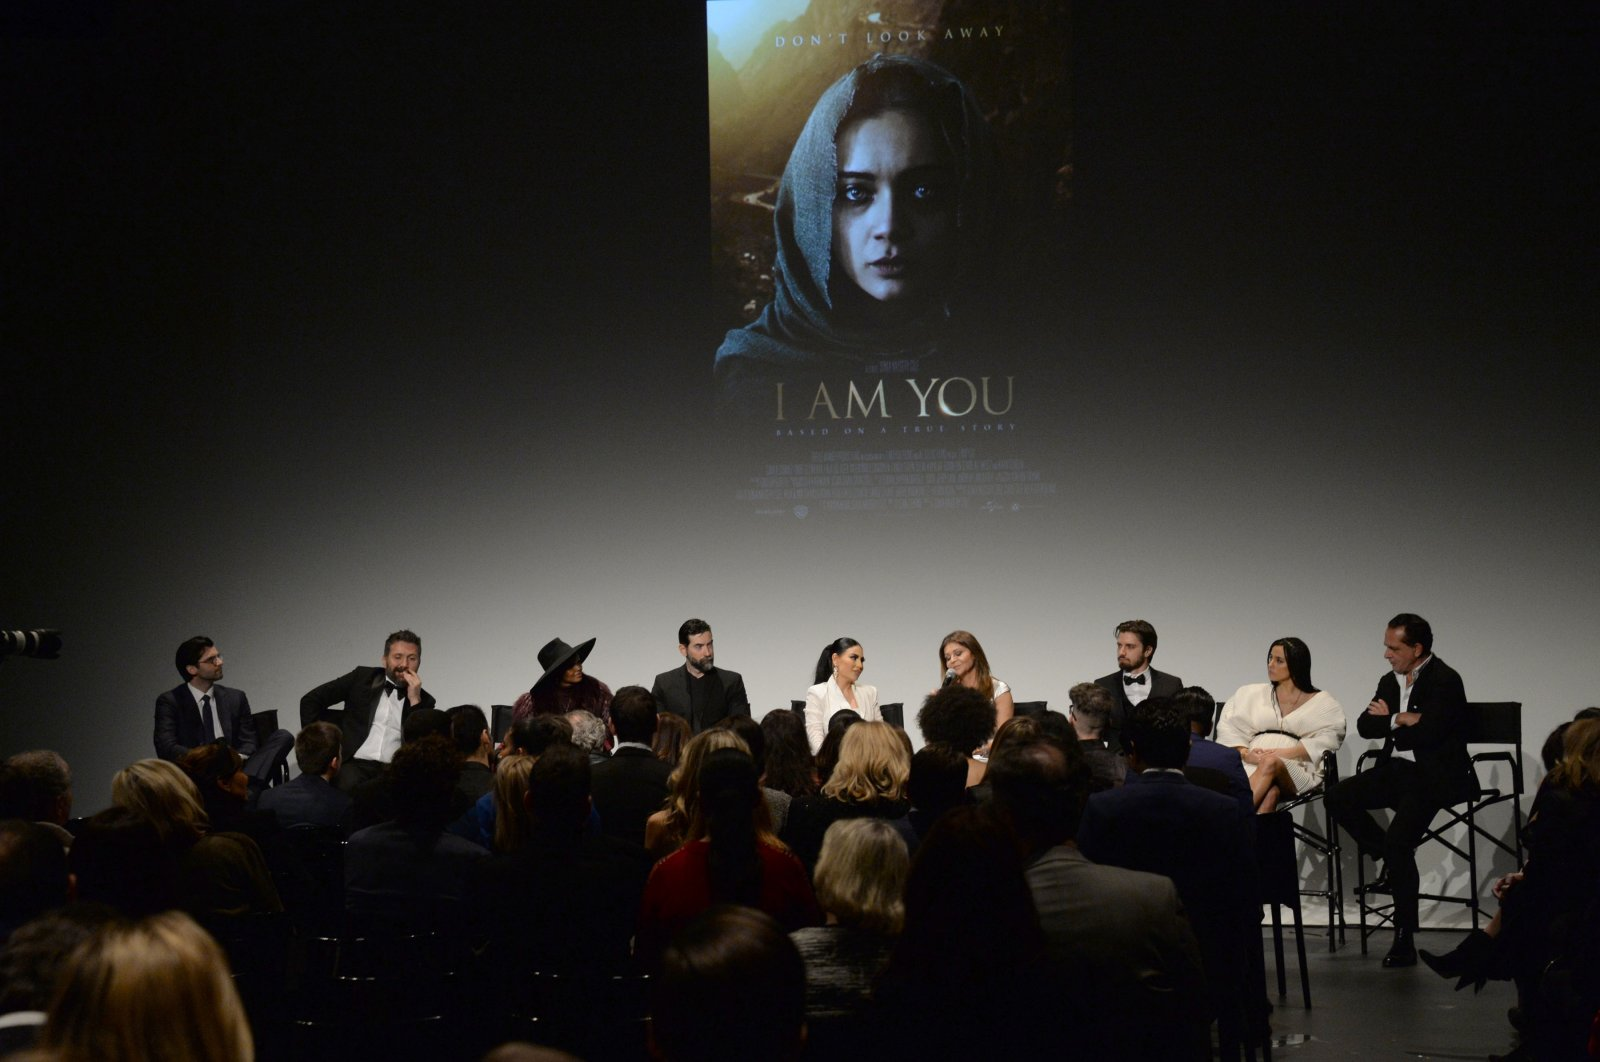 """From left,Chris Cole, Hakan Aydın, Halima Aden, Ali Pınar, Aryana Sayeed, Sonia Nassery Cole, Emre Çetinkaya, Cansu Tosun and Federico Pignatelli onstage at the New York premiere of """"I Am You,"""" at Pier 59 Studios, New York City, U.S.,Feb. 6, 2020. (Getty Images)"""